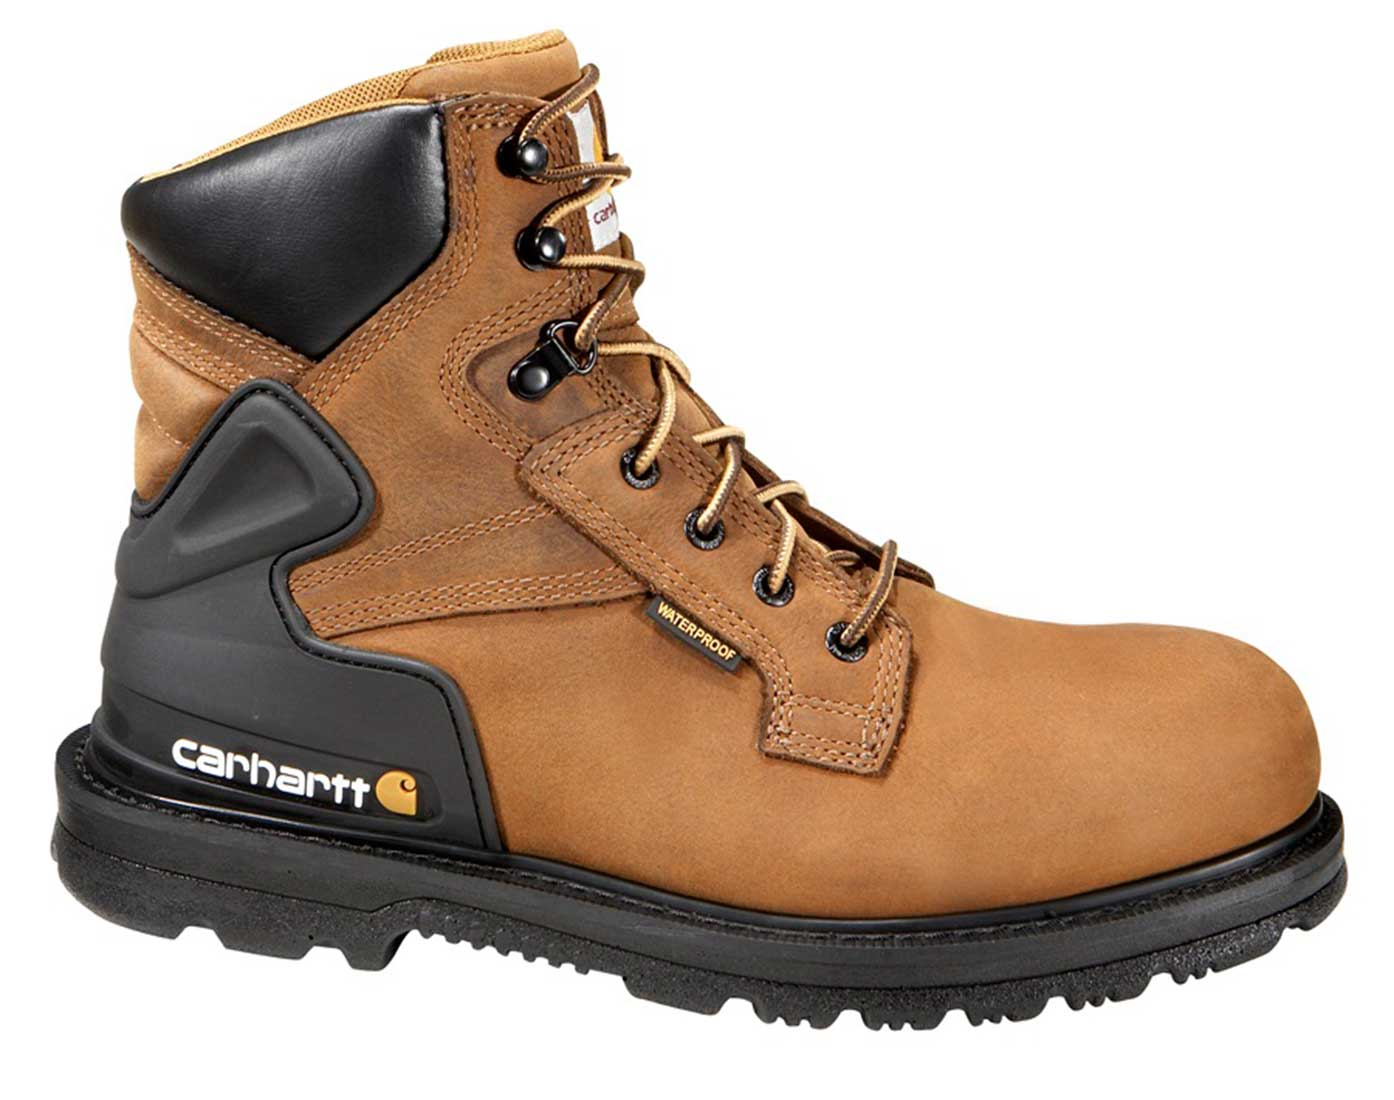 Carhartt Core Men's Bison Brown Leather Waterproof Steel Safety Toe 6-inch lace-up Work Boot